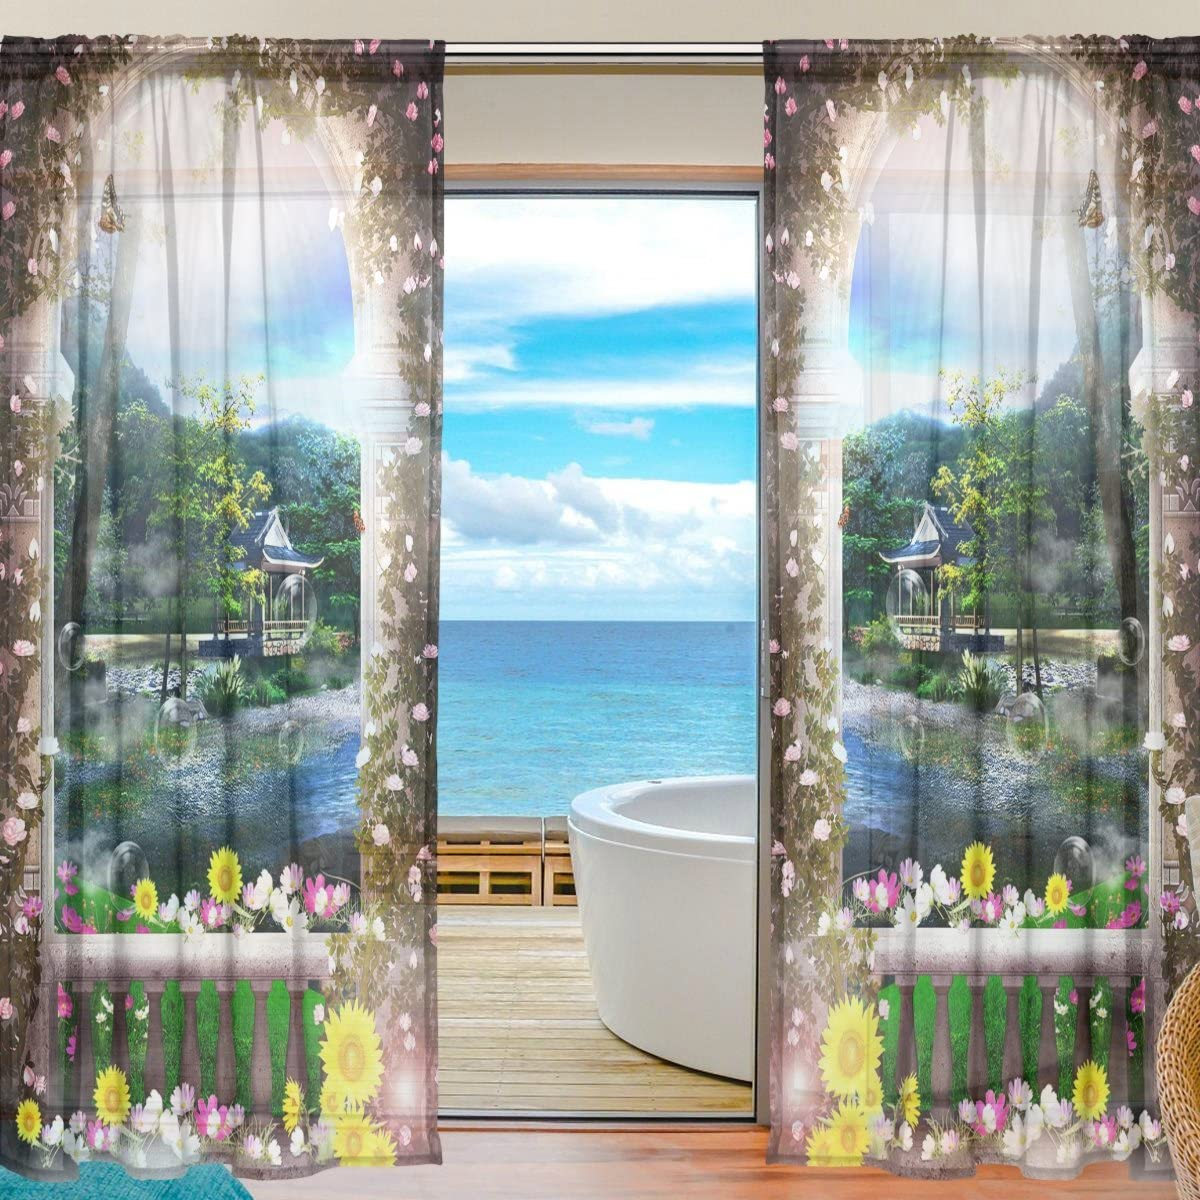 ABLINK Dream Gate Fabric Sheer Decor Voile Tulle Window Door Curtains for Bedroom Living Room Gauze Curtains Transparent Curtain 55 W X 78 L